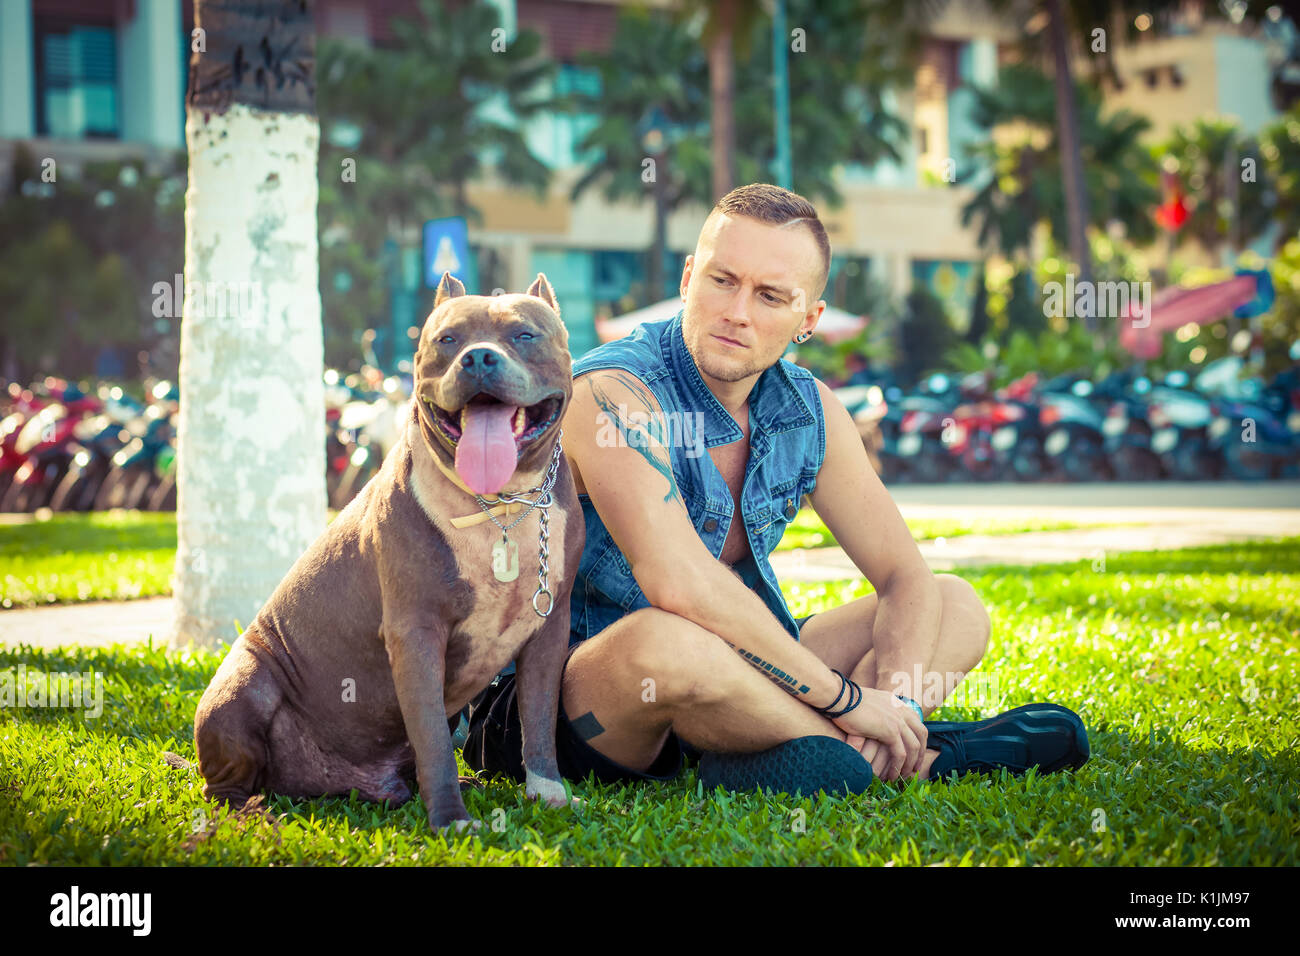 Happy friends man and dog american pit bull terrier sitting on grass in park - Stock Image